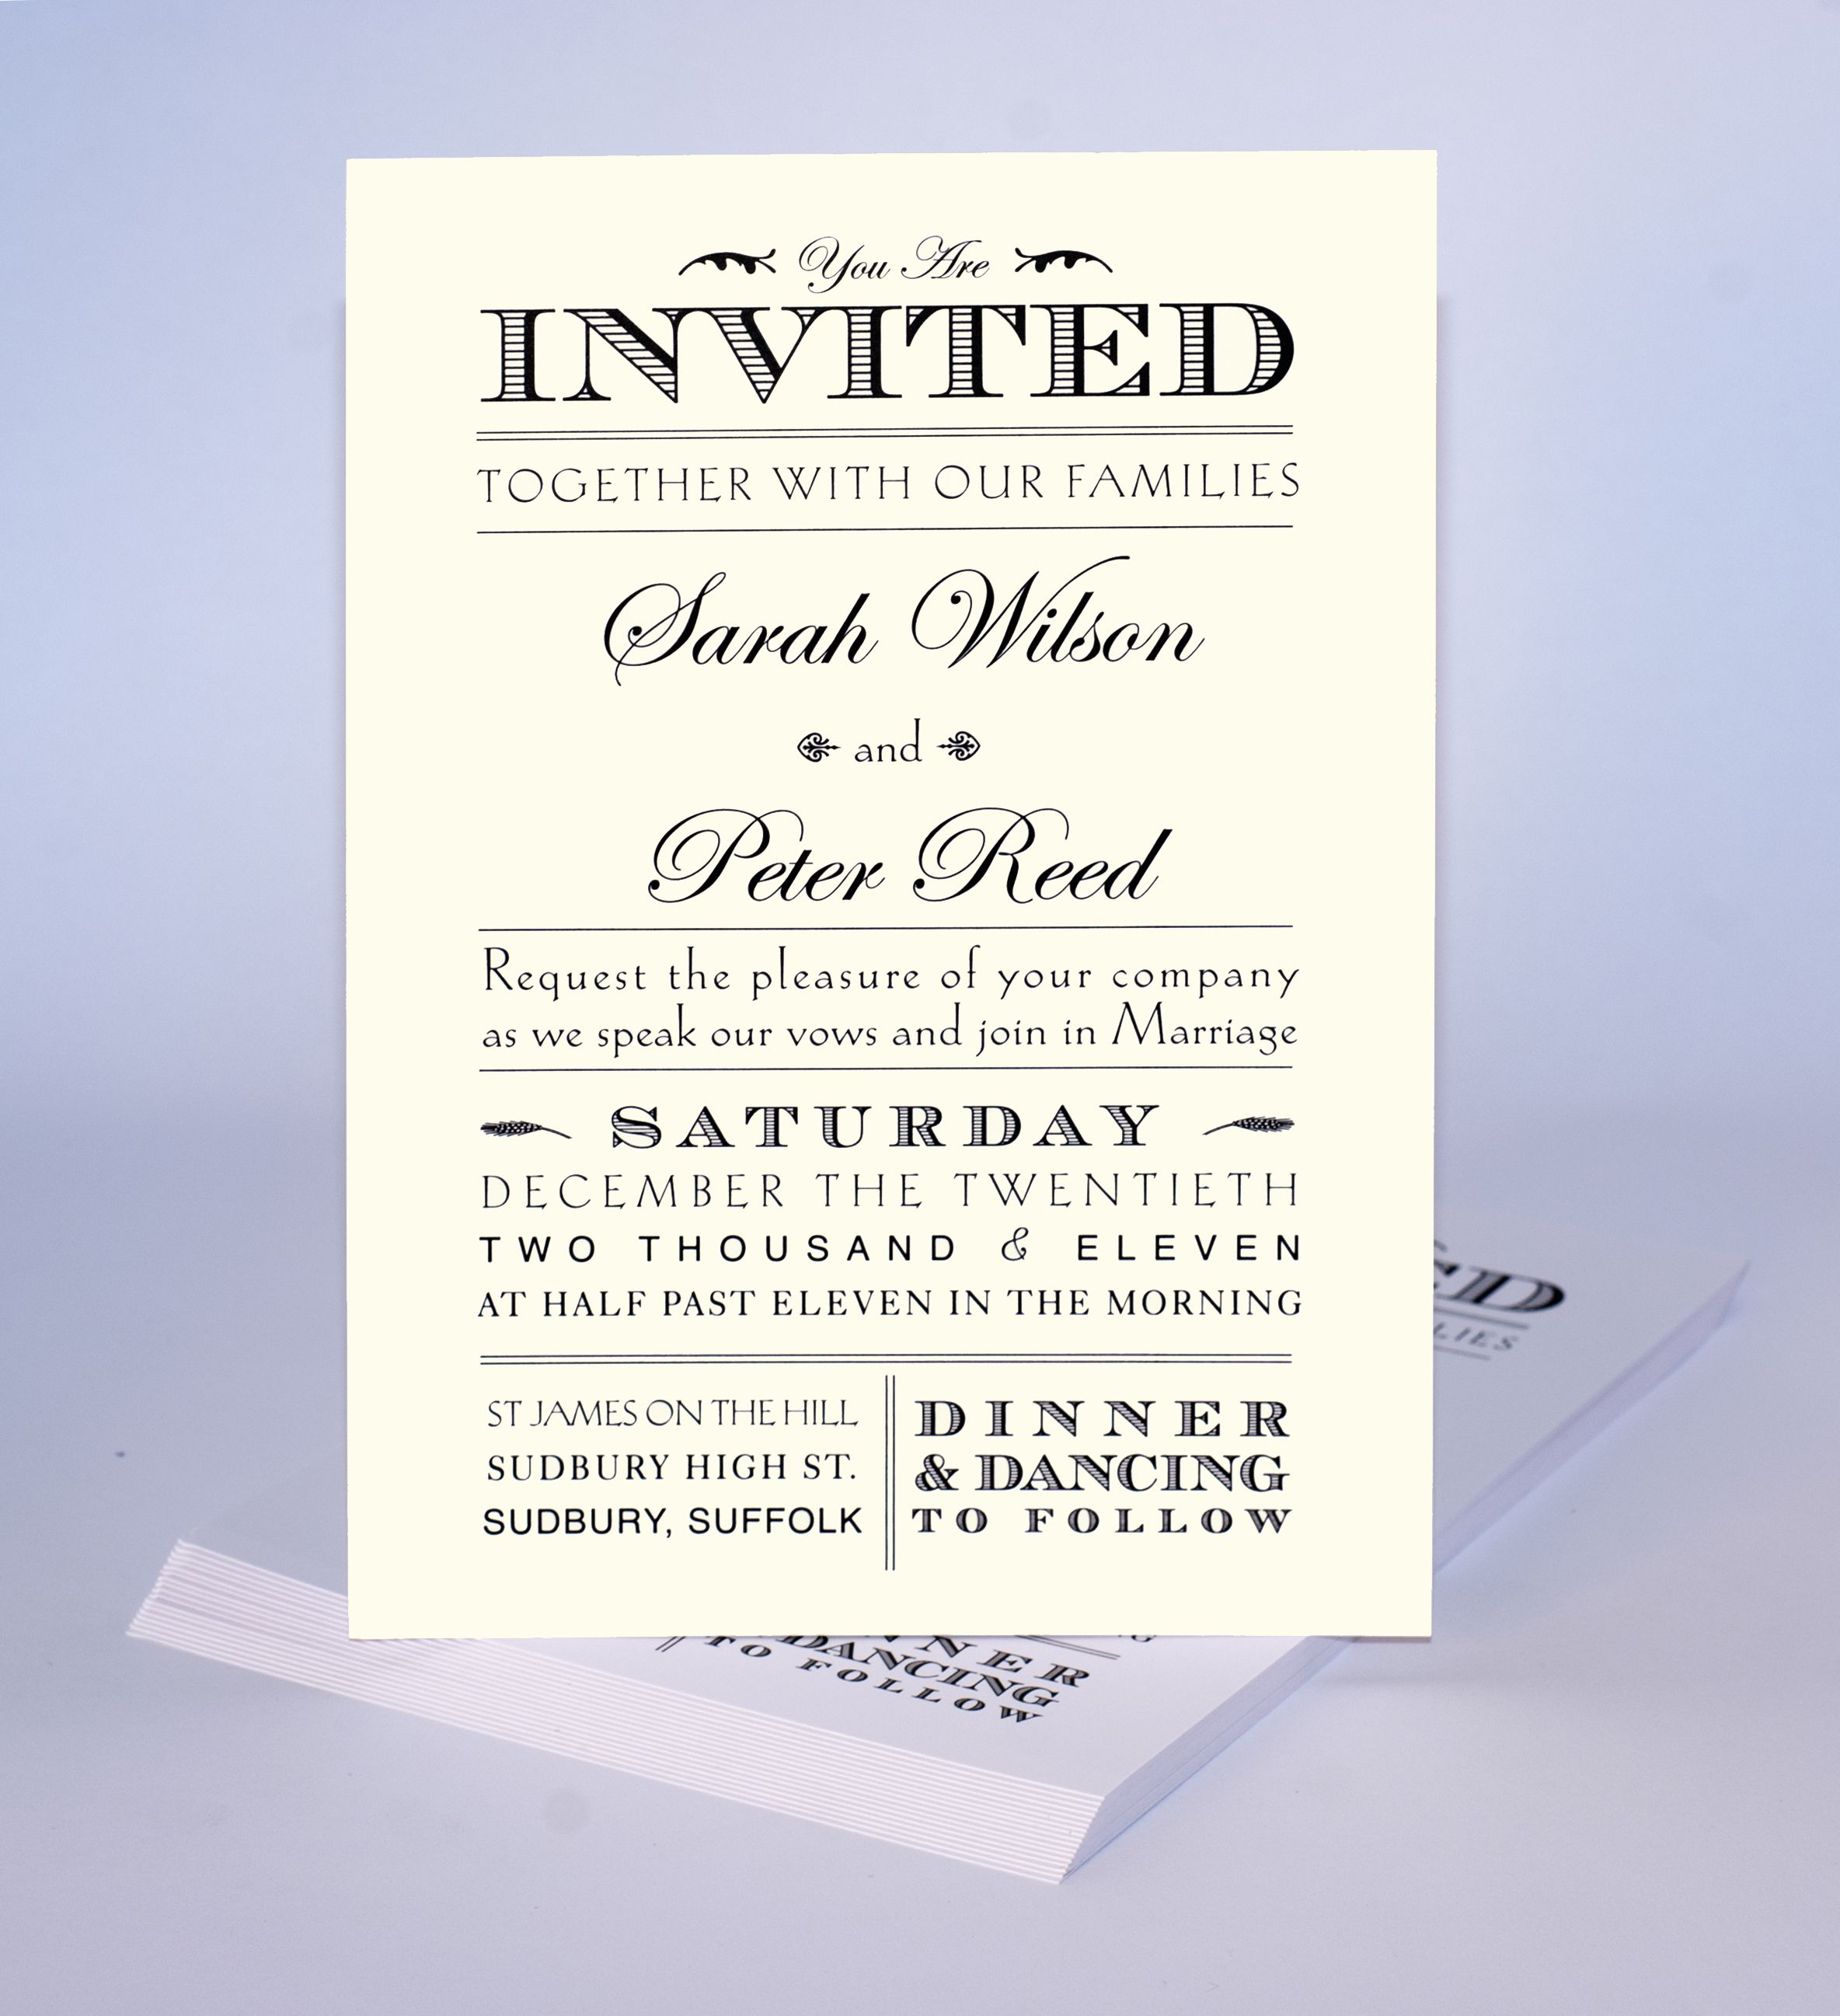 Samples Of Wedding Invites: Wedding Ideas : Wedding Invite Samples For Public Sample